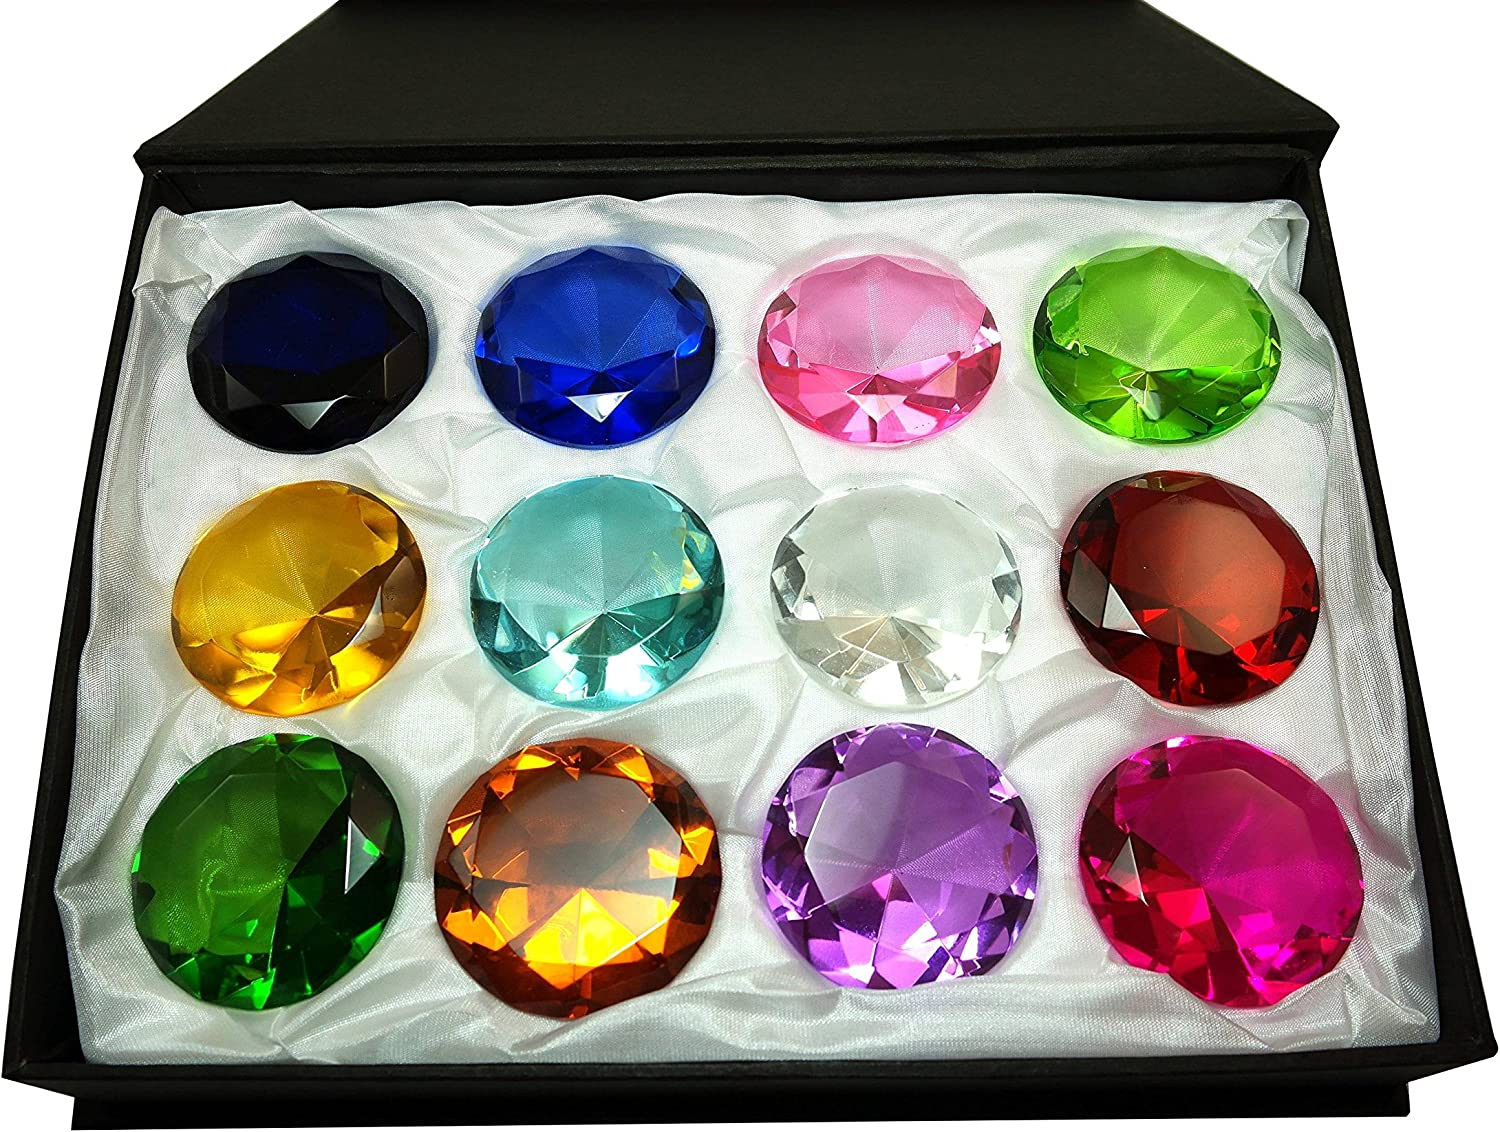 12pc Box Set Diamond Shaped Crystal Jewel Paperweight by Tripact